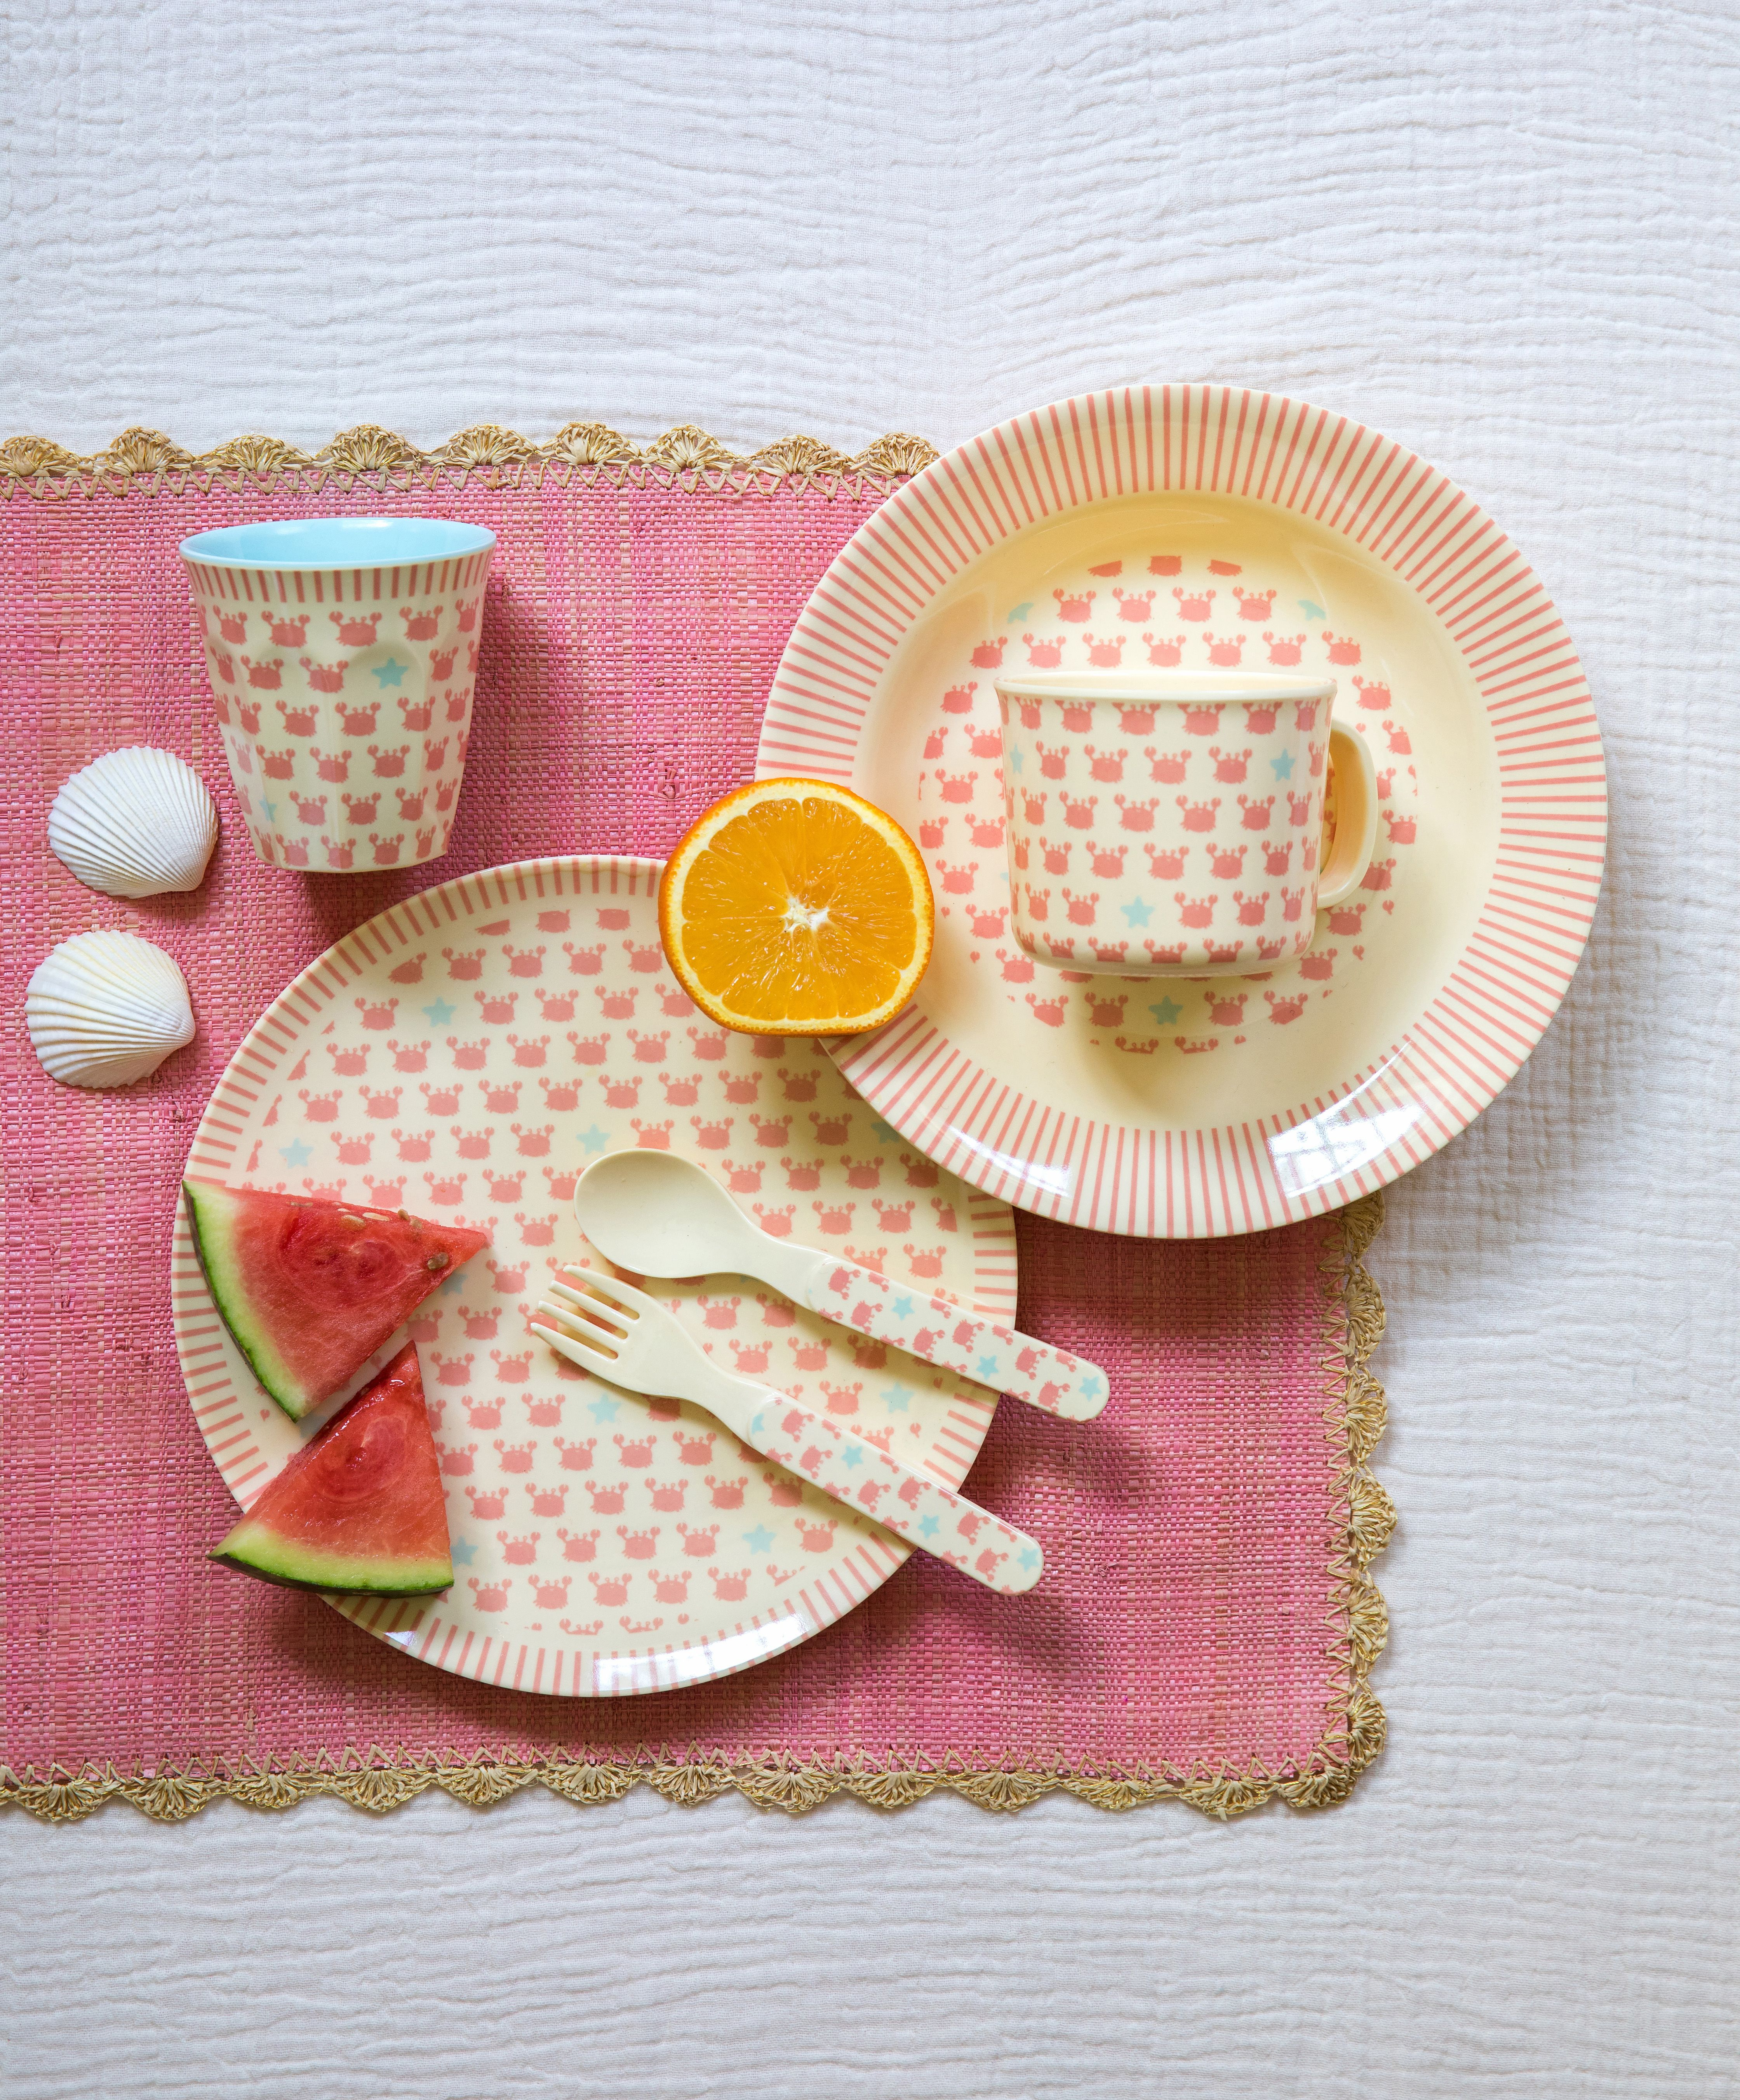 Kids melamine tableware - SS18 Eat Drink Boogie Repeat & Kids melamine tableware - SS18 Eat Drink Boogie Repeat | girl / teen ...